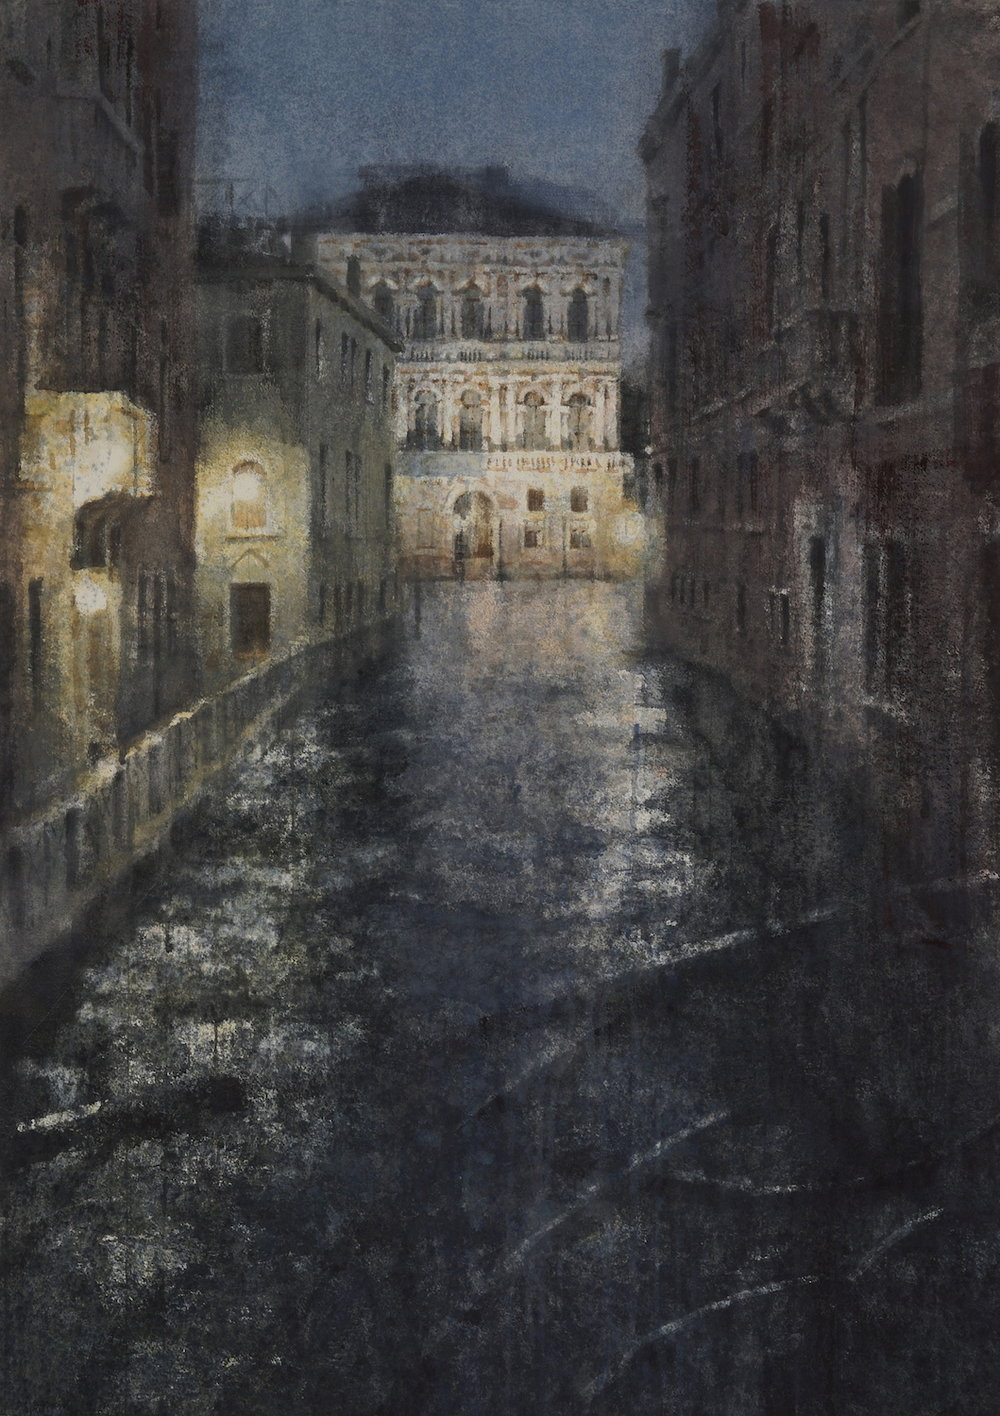 Venice I, 41x29 inches, (Private Collection)